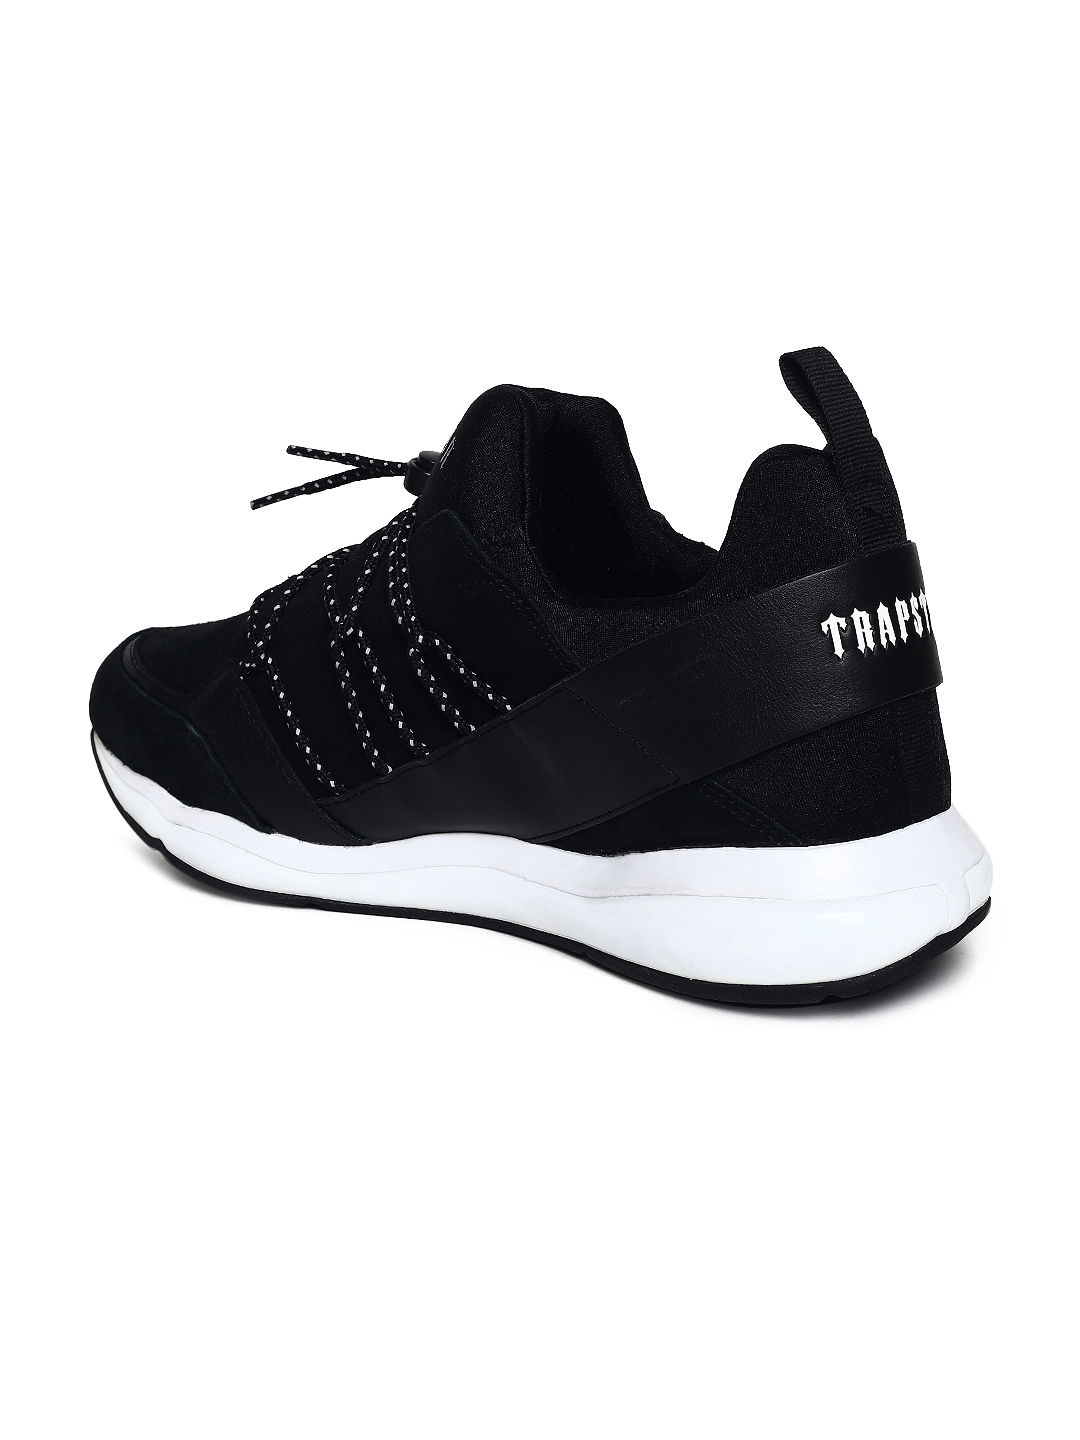 b0874e40fbe1 Buy Puma Men Black Cell Bubble Trapstar Leather Sneakers - Casual ...